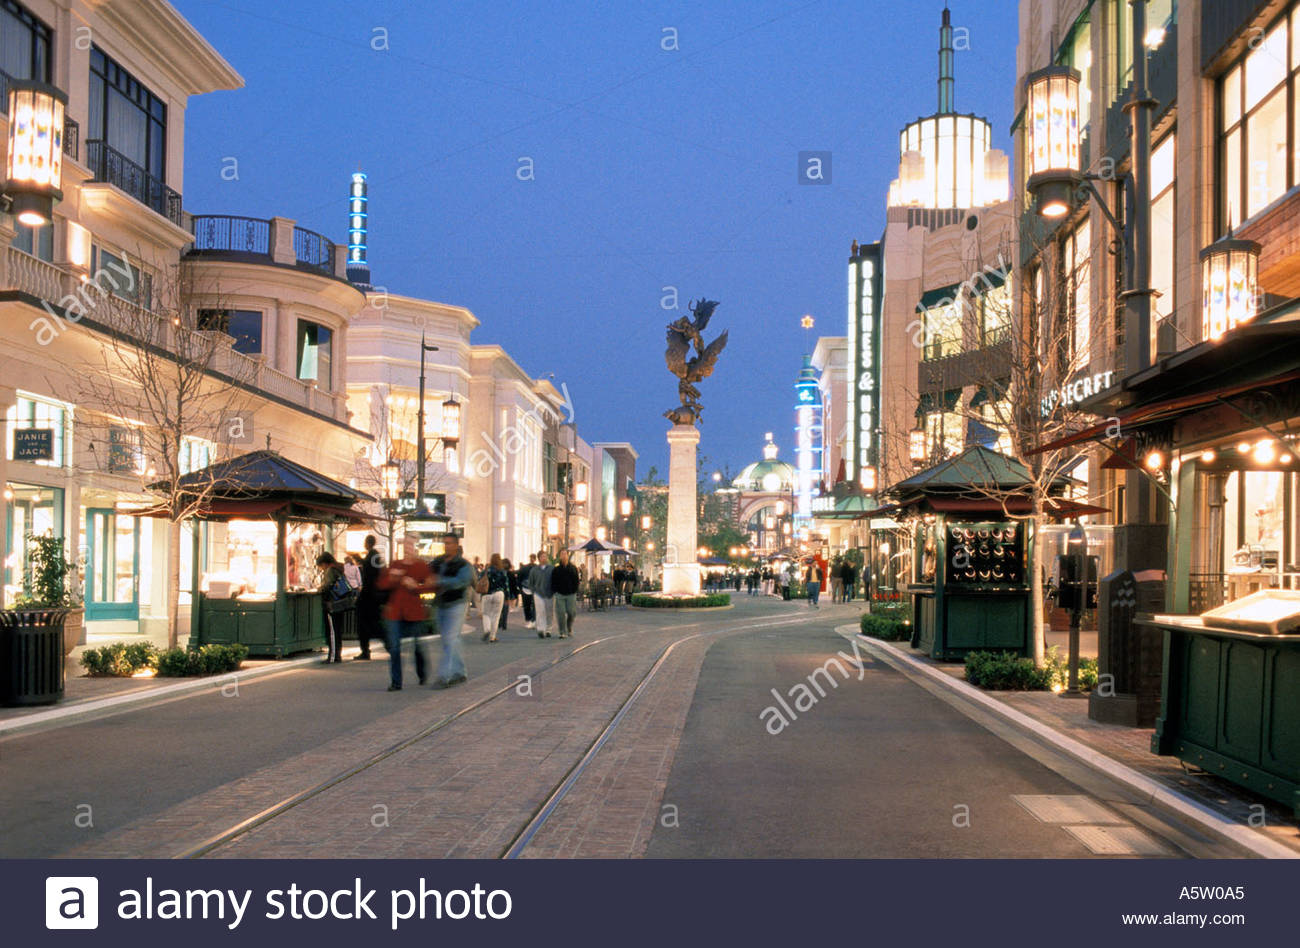 The Grove shopping mall. (Los Angeles, California, USA Stock Photo on the grove at farmers market, the grove mall pretoria, third street promenade, otay ranch town center, westfield topanga, the grove mall in california, south coast plaza, the grove beverly hills, los angeles sports and entertainment district, the grove trolley, the grove santa, westfield century city, the grove wesley chapel, sunrise mall, the improv, universal citywalk, the grove shopping center, santa monica place, the grove shopping mall, glendale galleria, the grove 3rd street, cbs television city, del amo fashion center, the beverly center, the grove ca, the grove movie theater, fashion island, the grove in hollywood, the grove la, angels flight, the grove fountain, americana at brand,